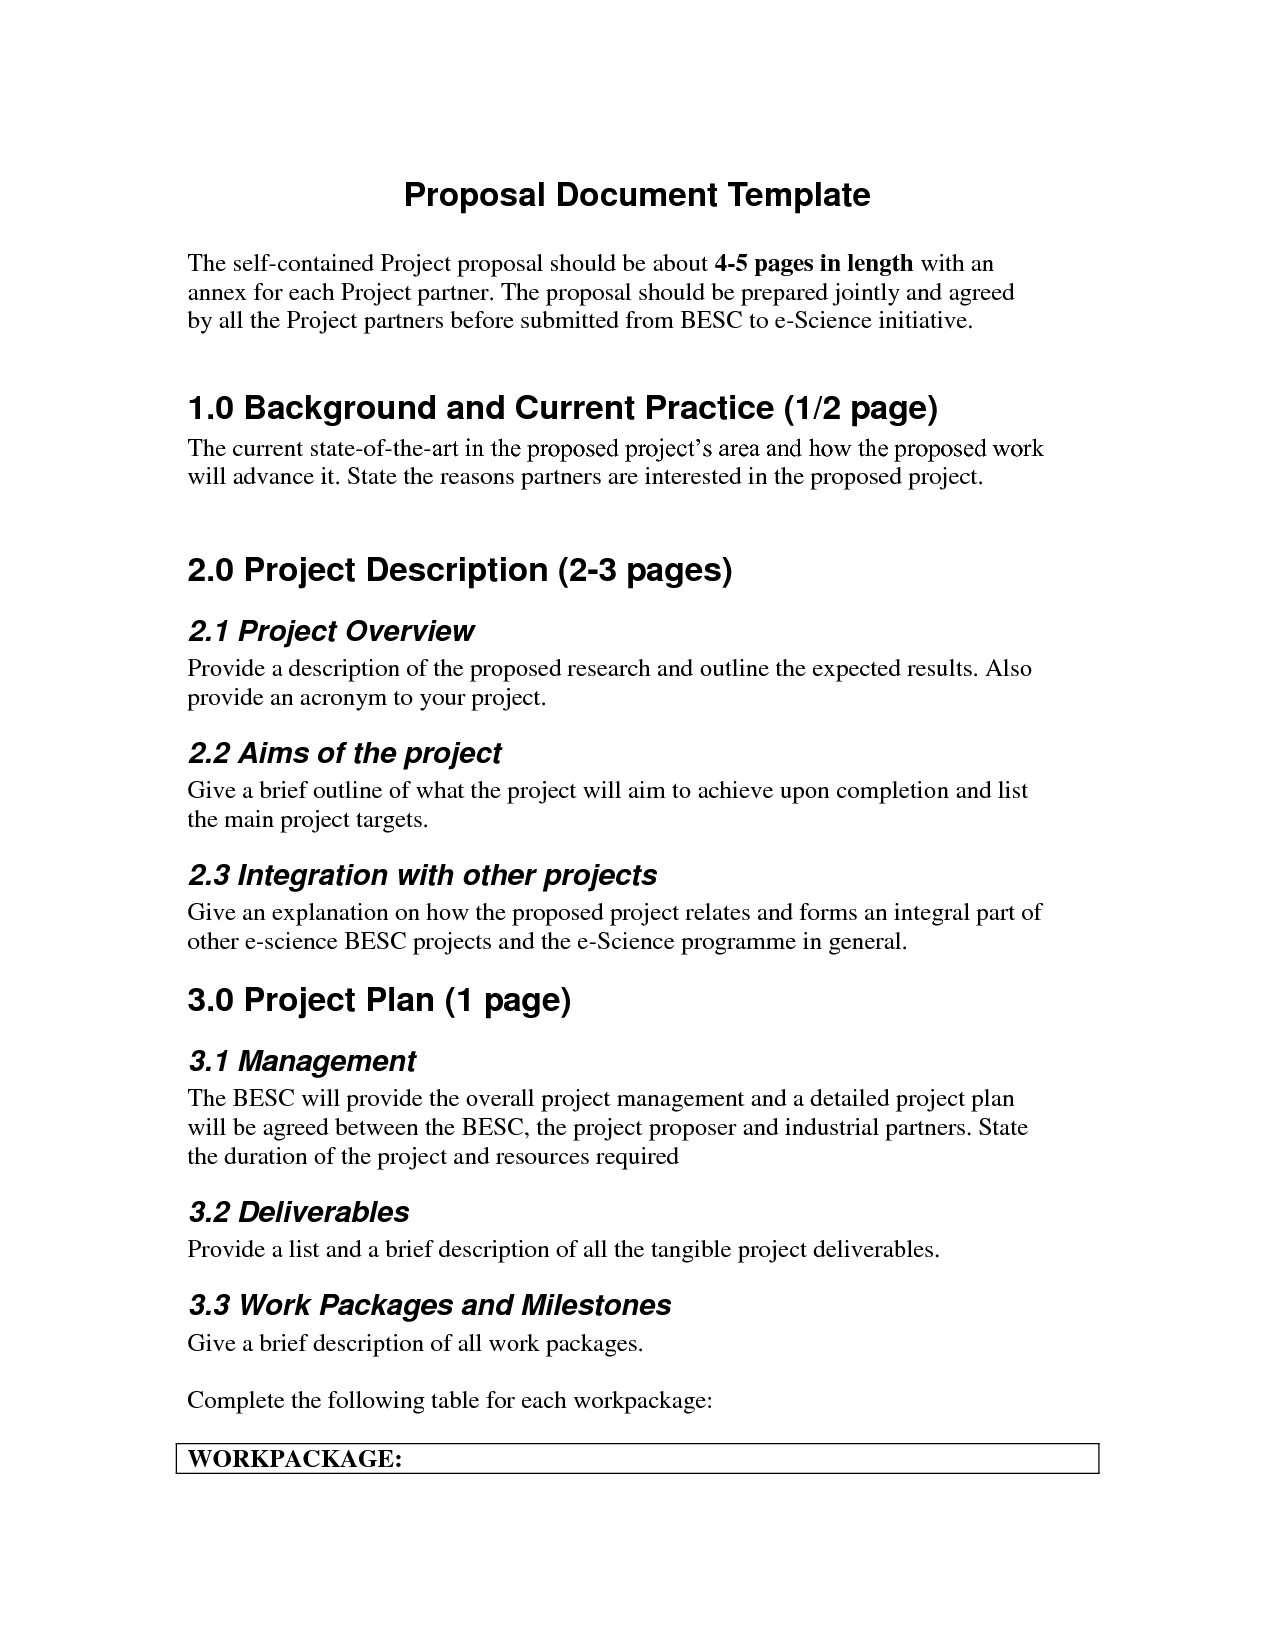 How To Write An Essay About A Movie Essay Proposal Template Proposal Essay Topics Before Students Write A  College Research Paper Satirical Essay On Texting also Computer Essays Essay Proposal Template Proposal Essay Topics Before Students  Essay Construction